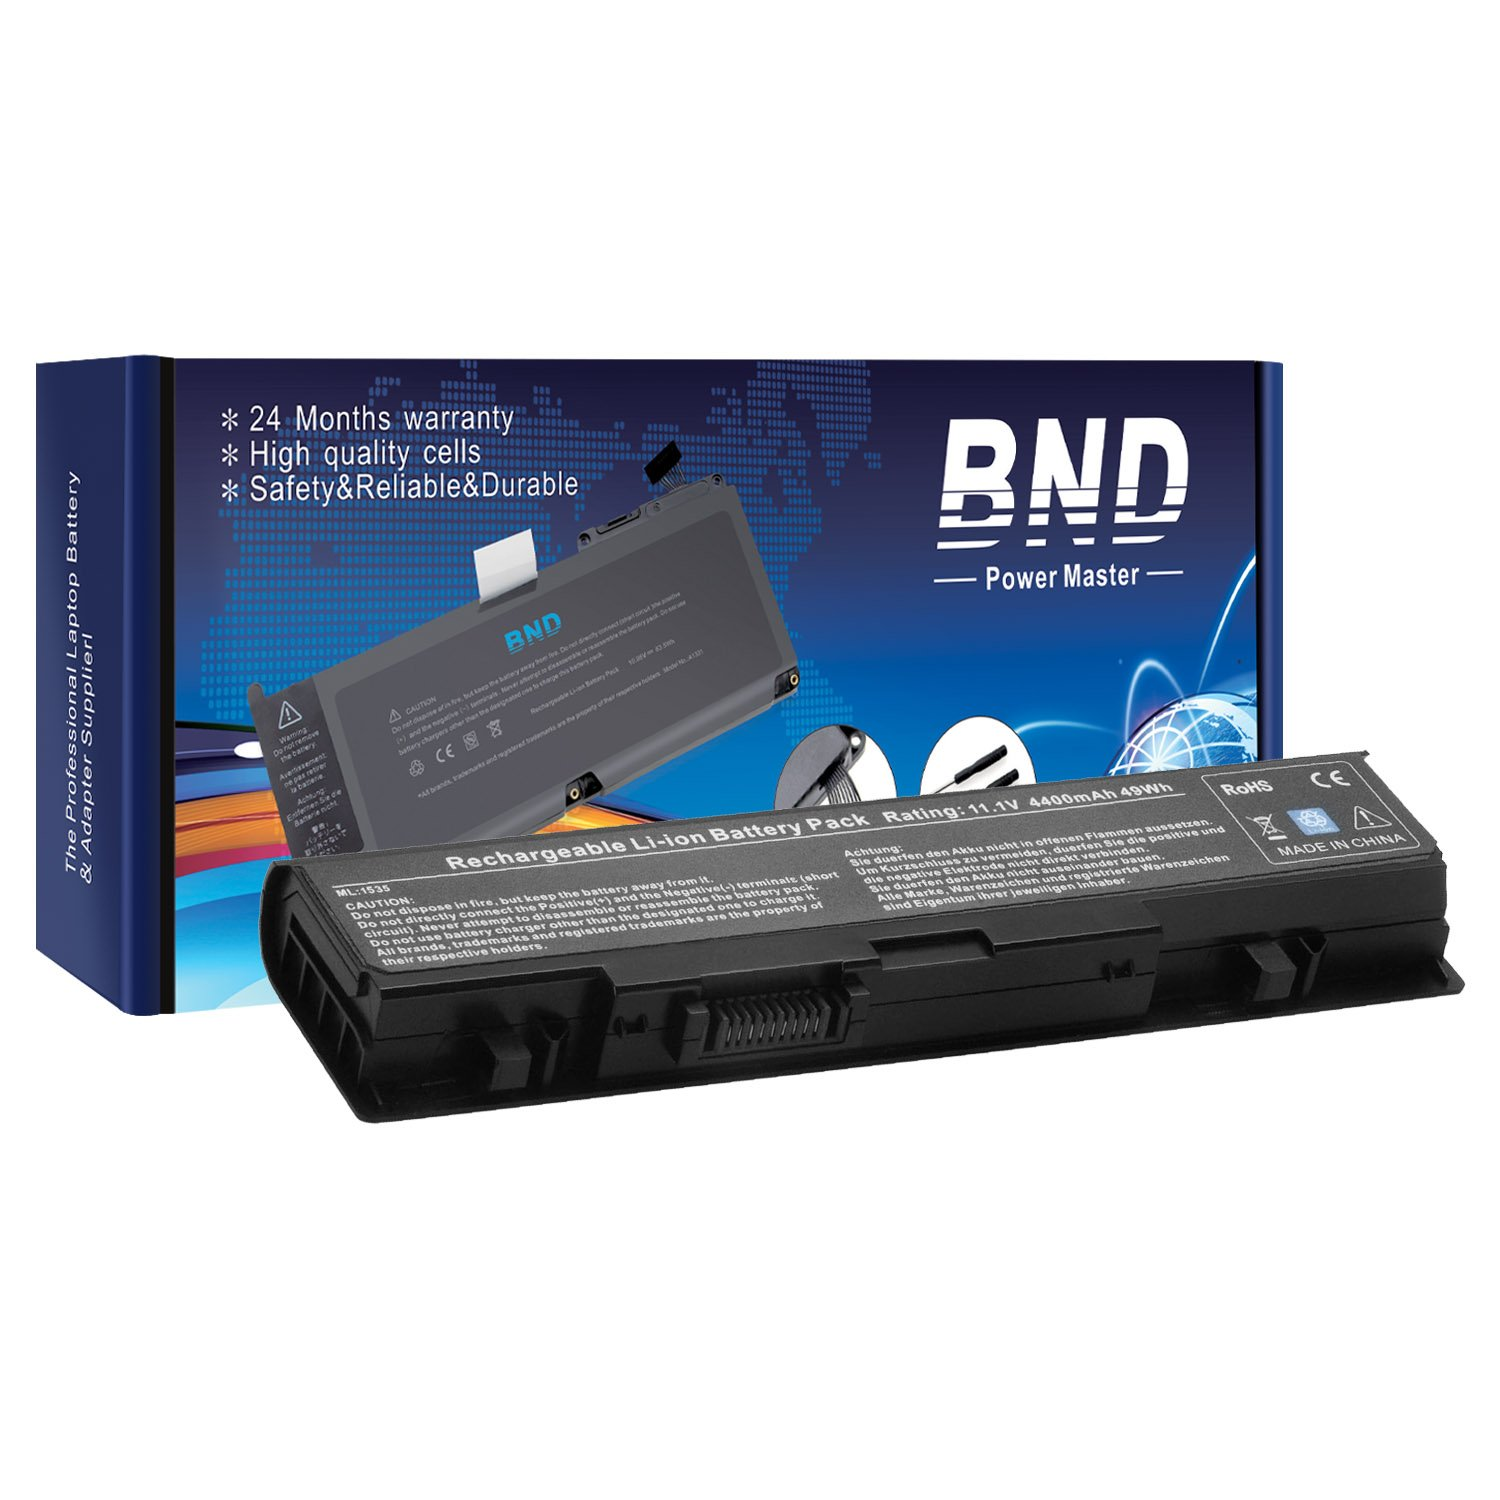 BND Laptop Battery for Dell Studio WU946 1558 1555 1537 1535 PP39L PP33L 1536, fits P/N WU946 MT264  - 12 Months Warranty [6-Cell 4400mAh/49Wh]